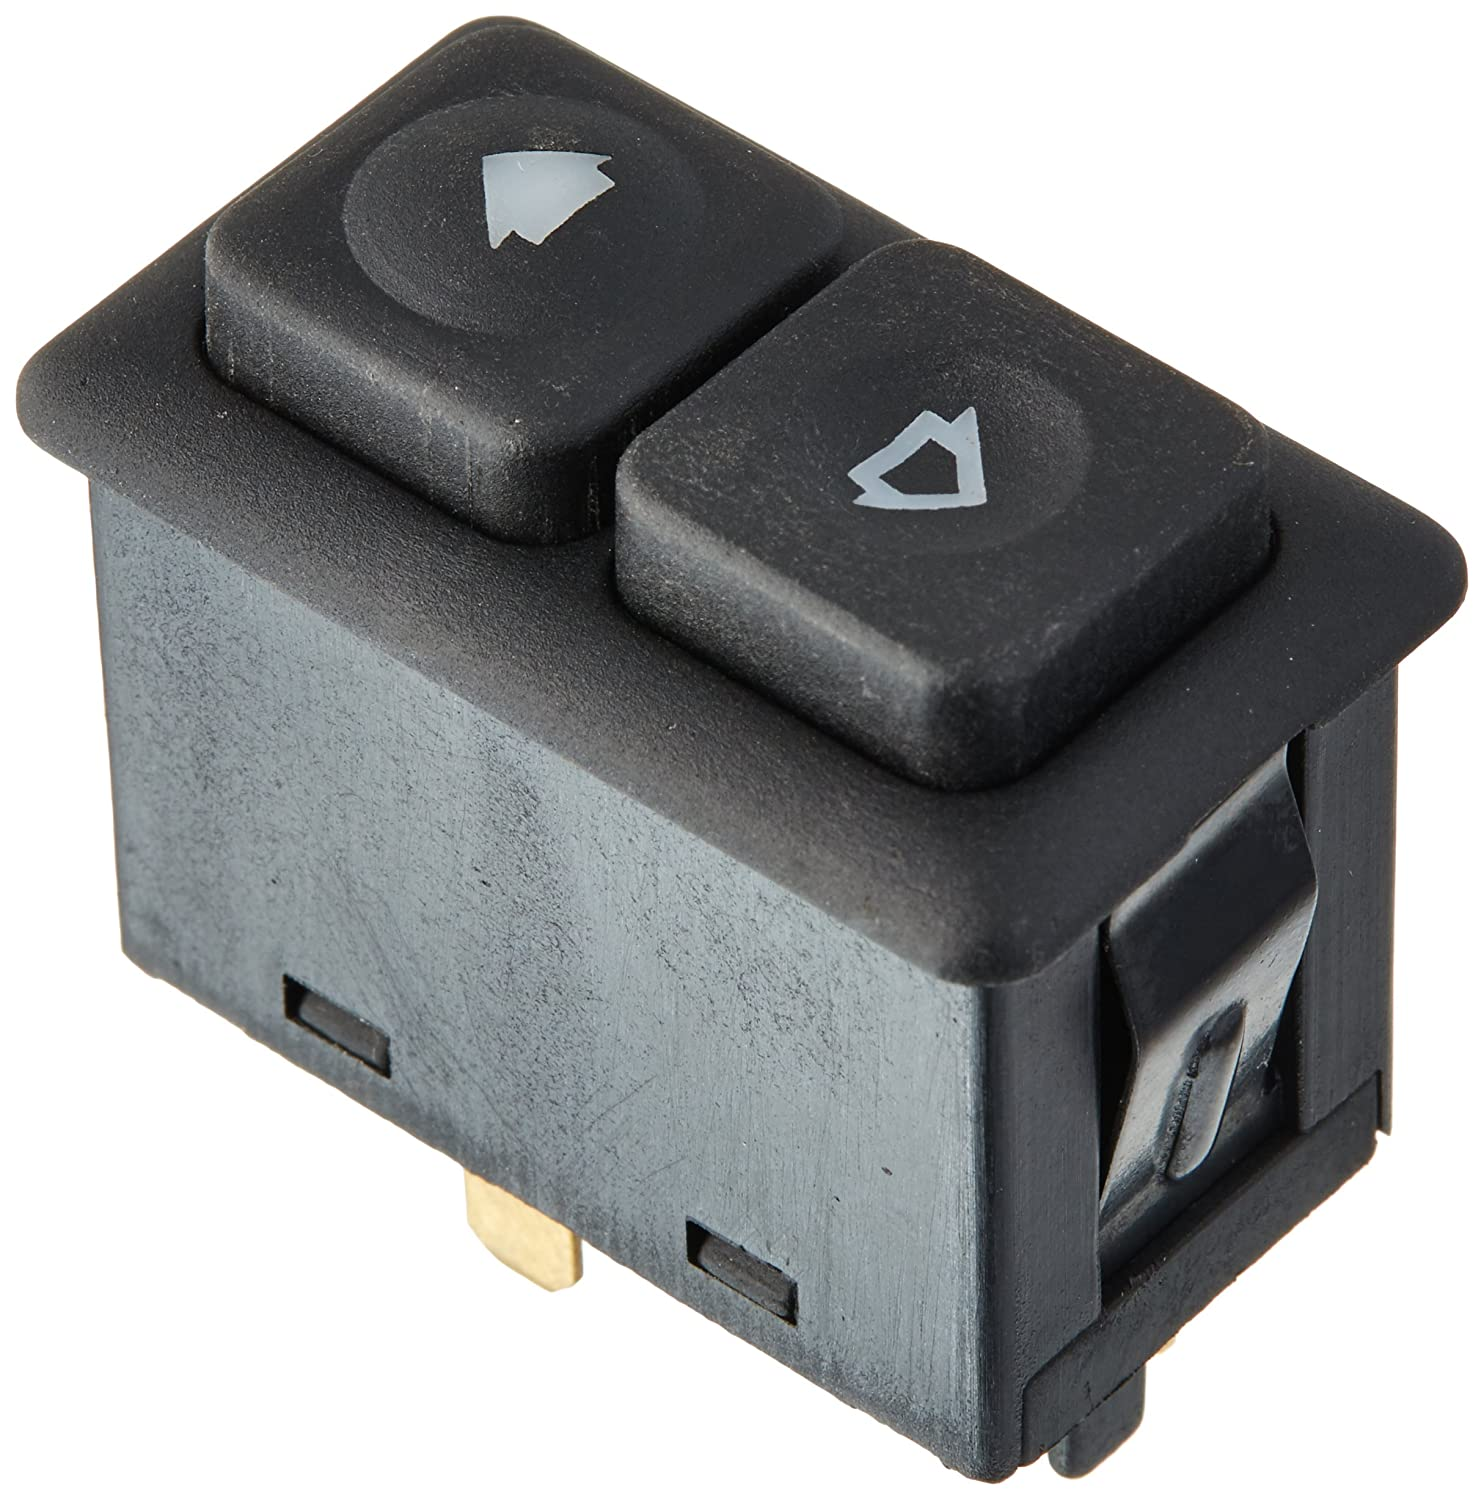 MTC 1039/61-31-1-381-205 Window/Sunroof Switch (for BMW Models) 1039 / 61-31-1-381-205